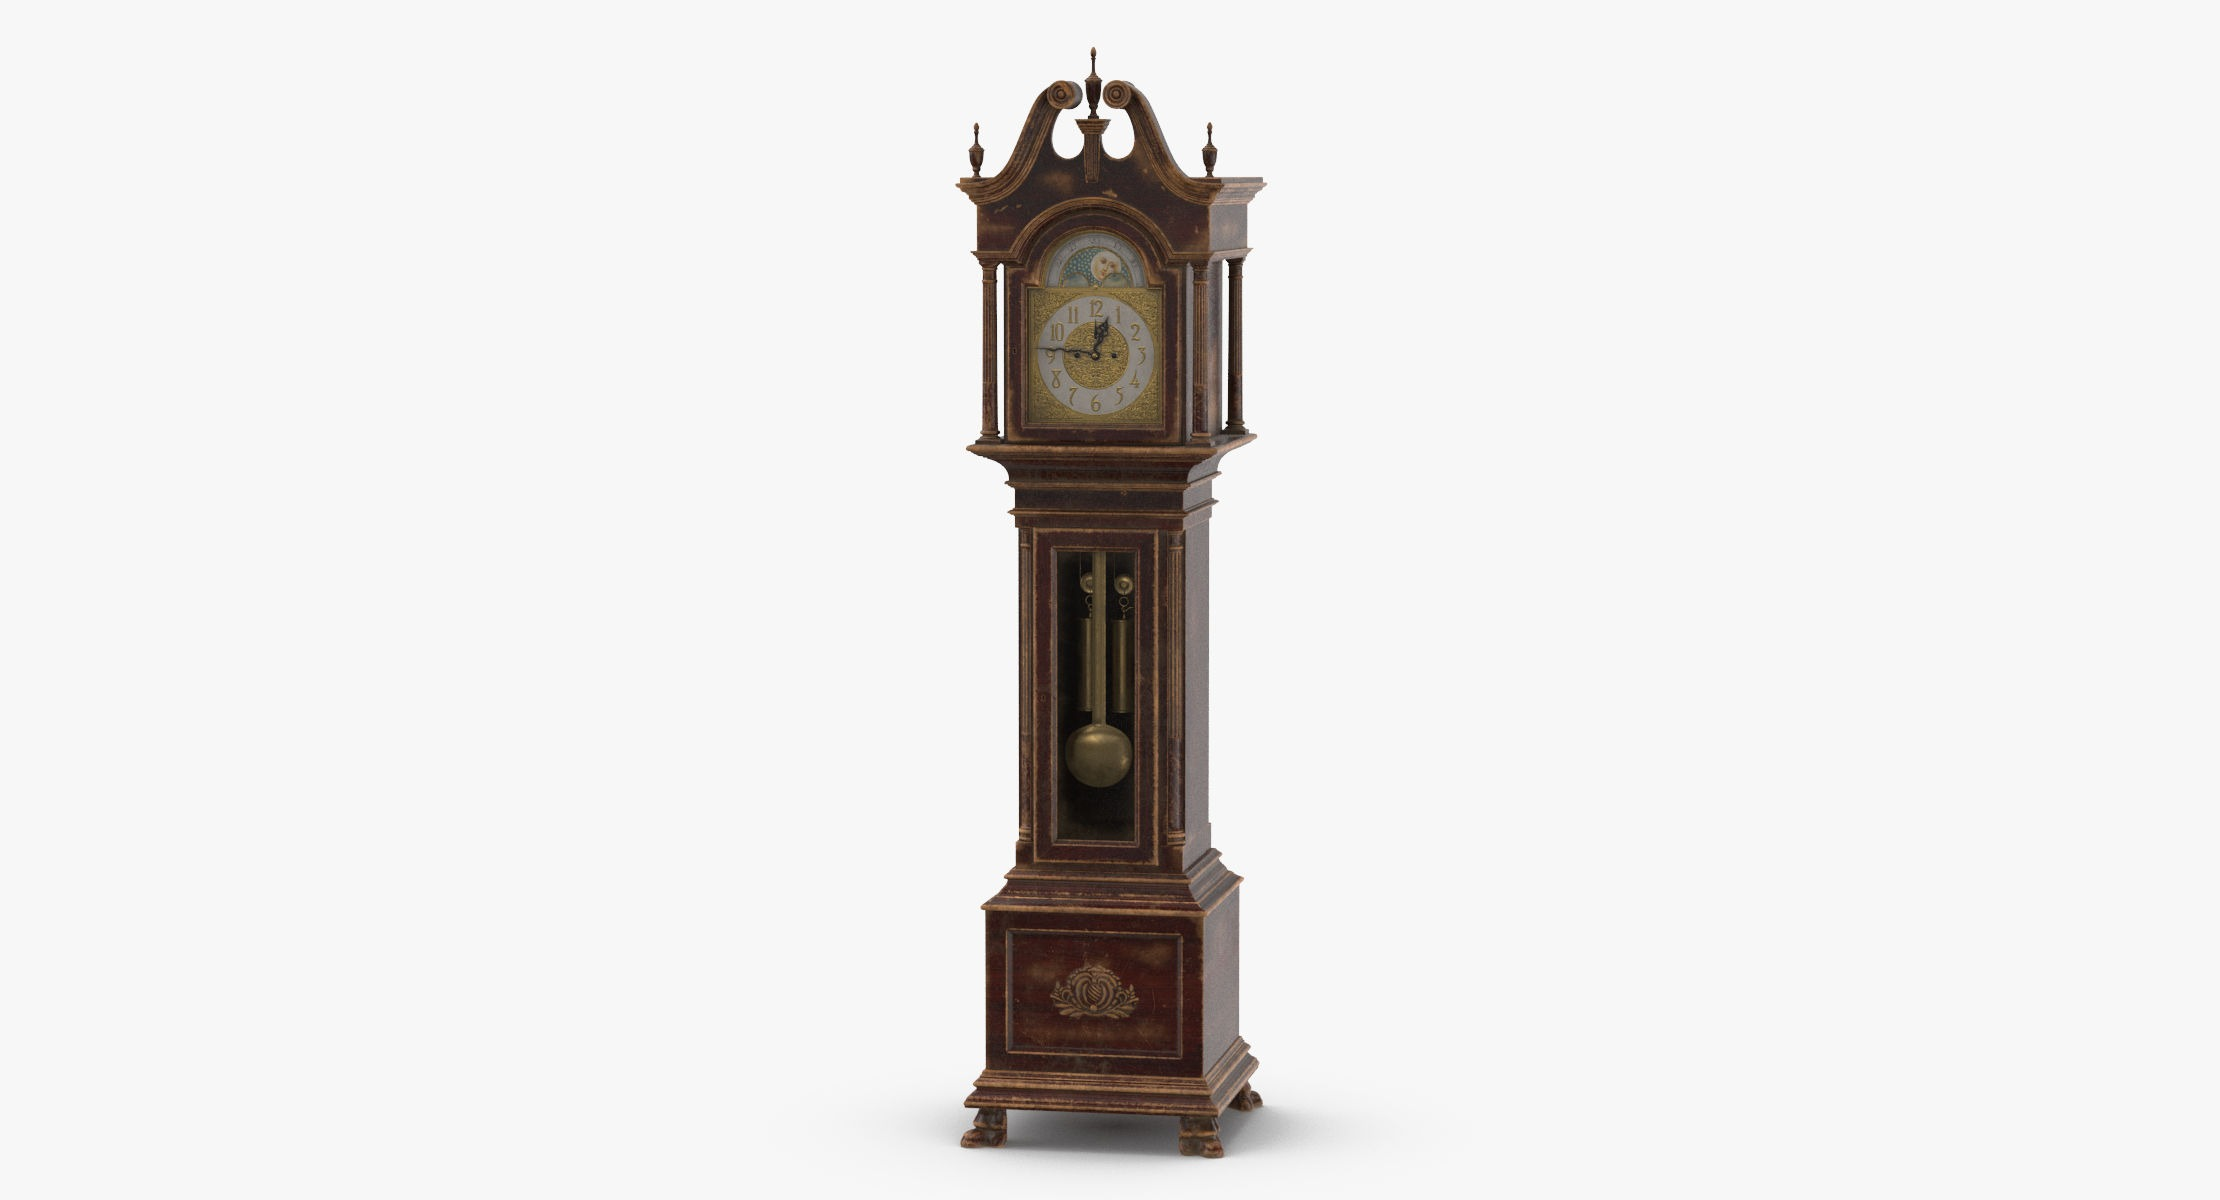 Creepy Grandfather Clock 01 - reel 1